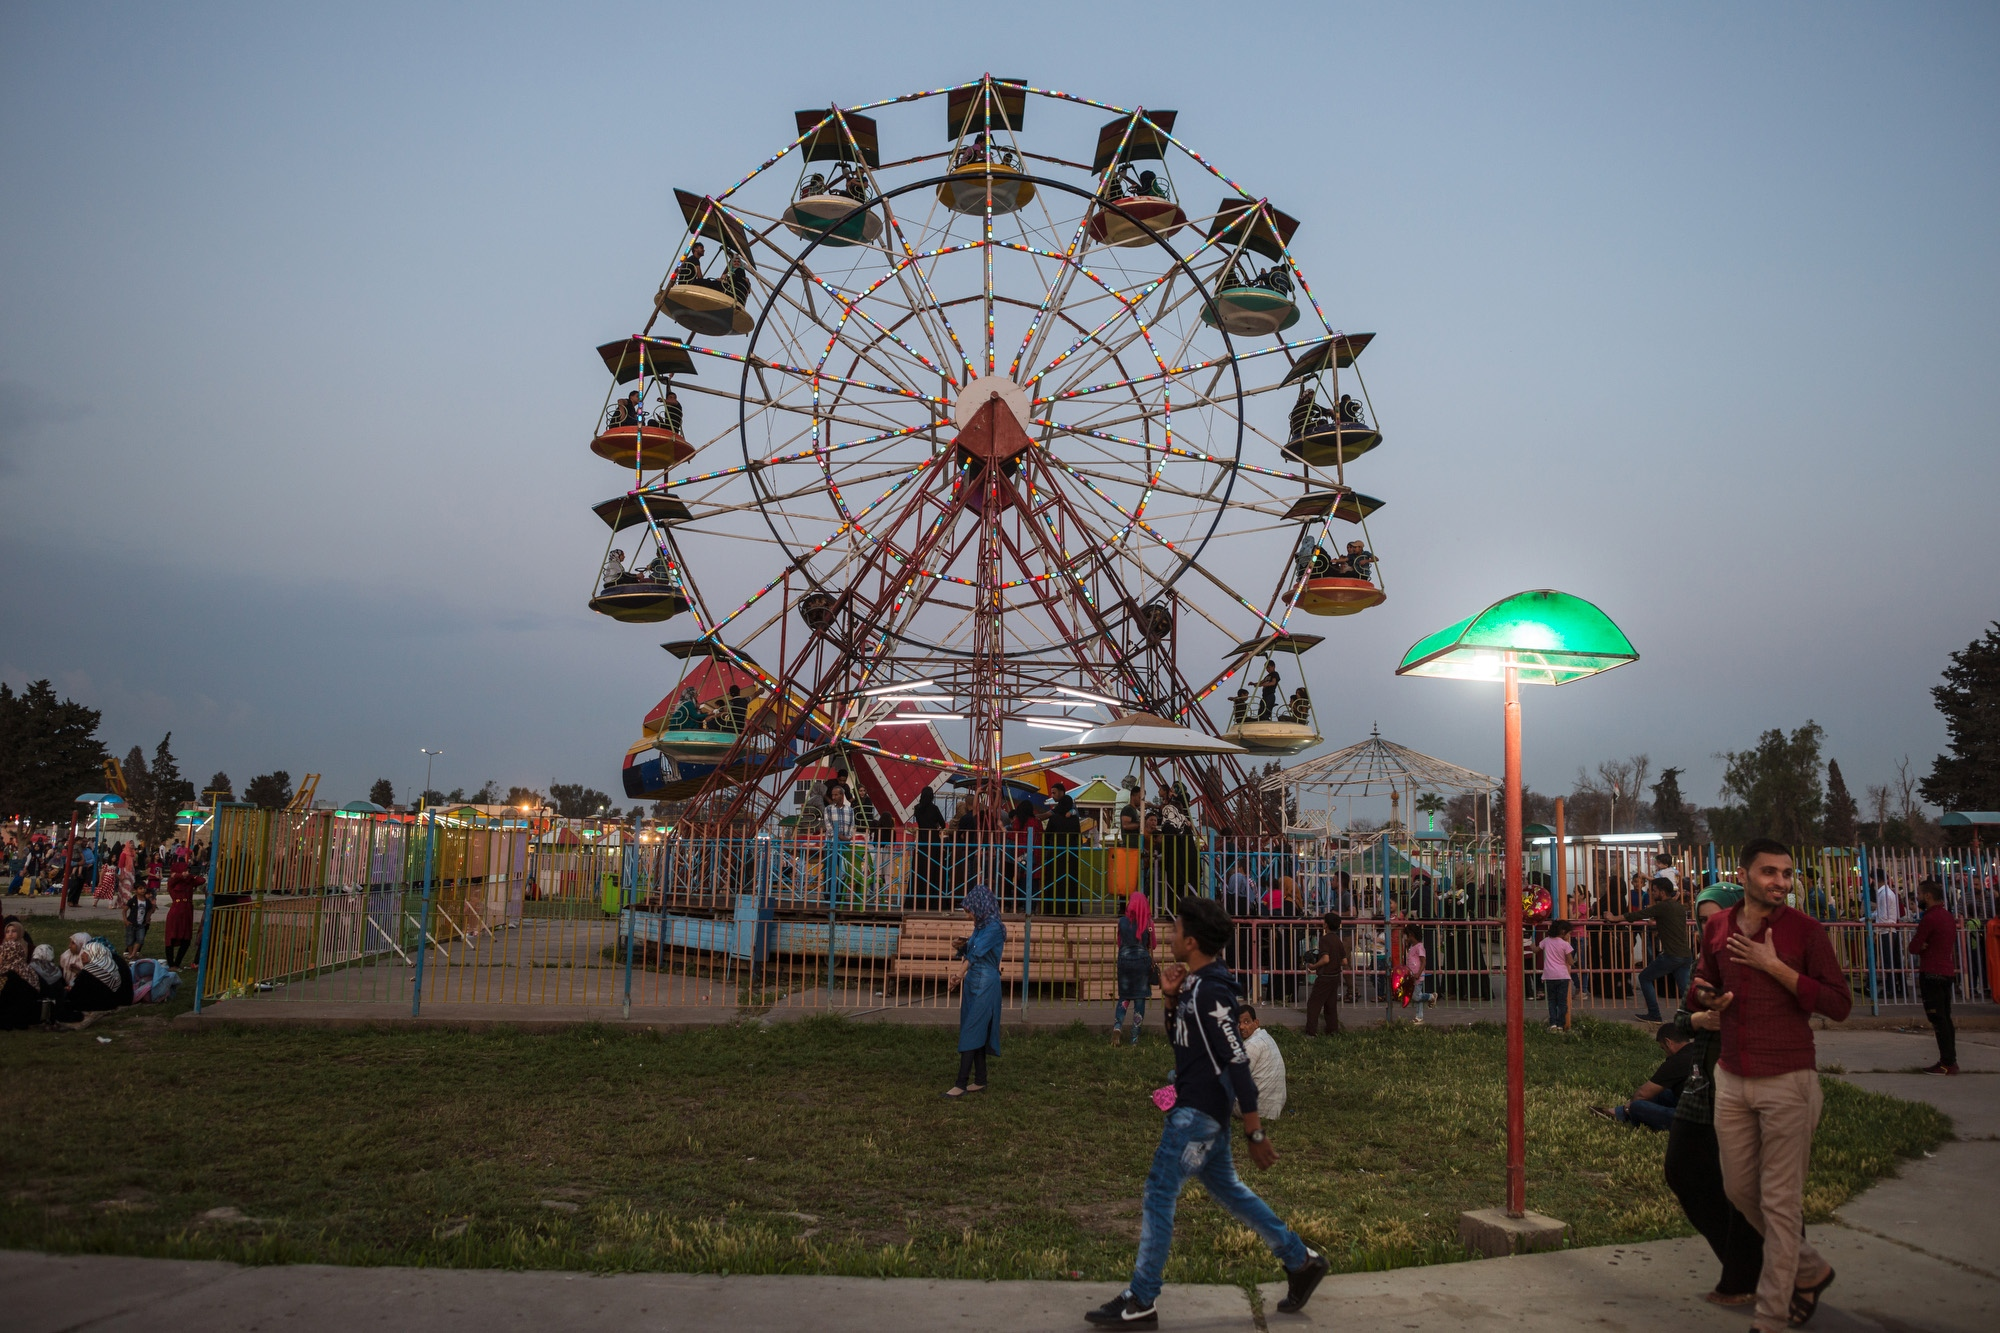 MOSUL 20180414 The fun fair in Mosul was ruin by Daesh during the occupation, but since the liberation the number of visitors have increased to even higher numbers than before Daesh, says the manager. Photo: Vilhelm Stokstad / Kontinent